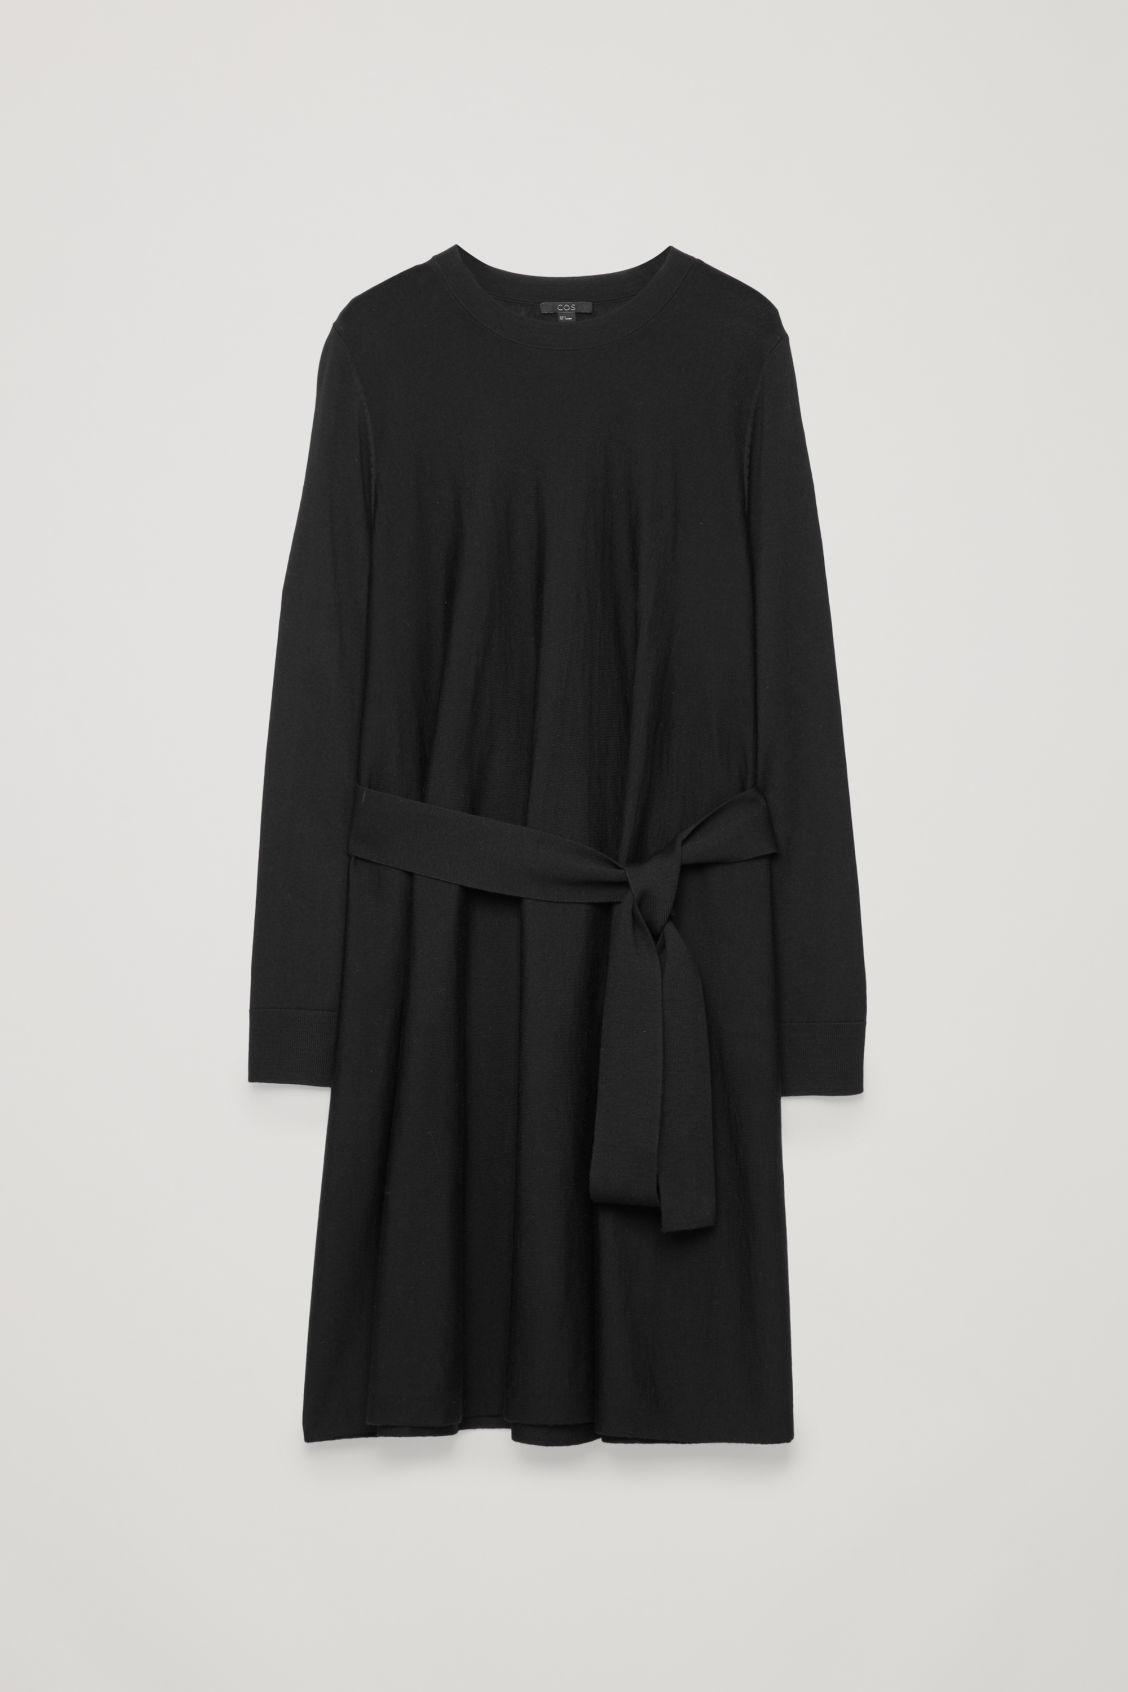 COS A-LINE MERINO-WOOL KNIT DRESS